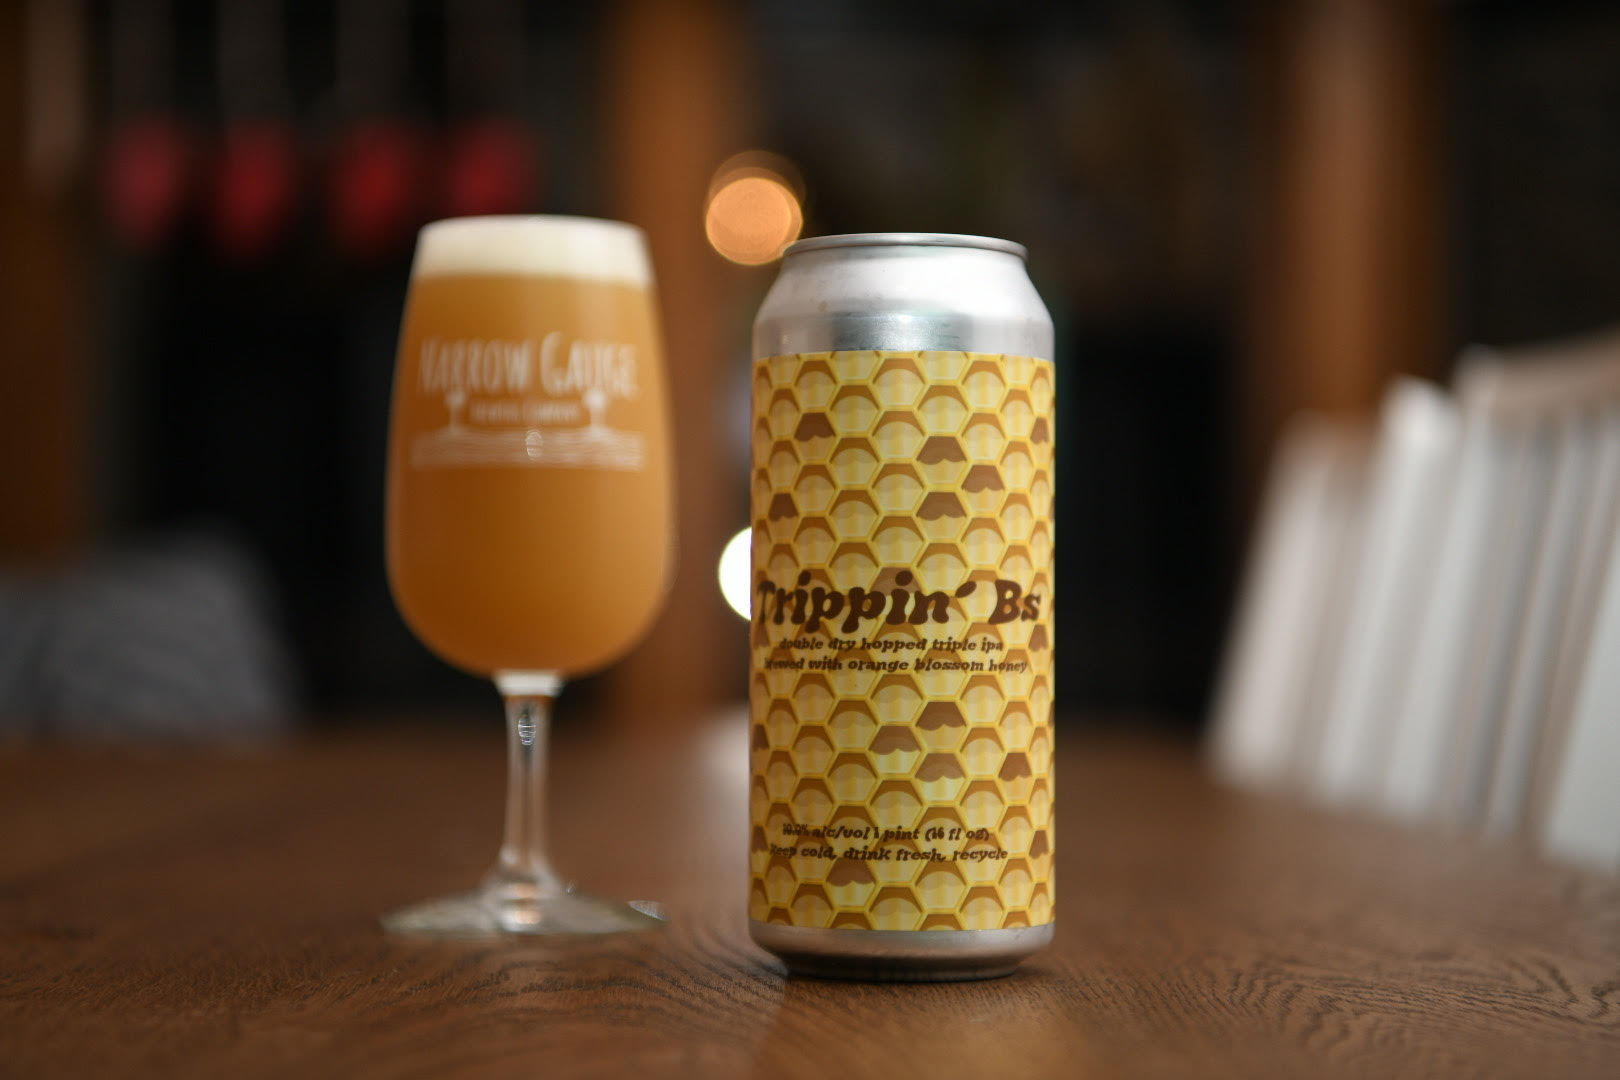 Available tomorrow (12/27) at 11am:  -Trippin' Bs (Our collaboration with @trippinganimalsbrewing - Double dry hopped triple IPA brewed with orange blossom honey•10% ABV•70 IBU)  #narrowgaugebeer x #trippinganimalsbrewing #stlcraftbeer https://t.co/77Q0QNNPhM